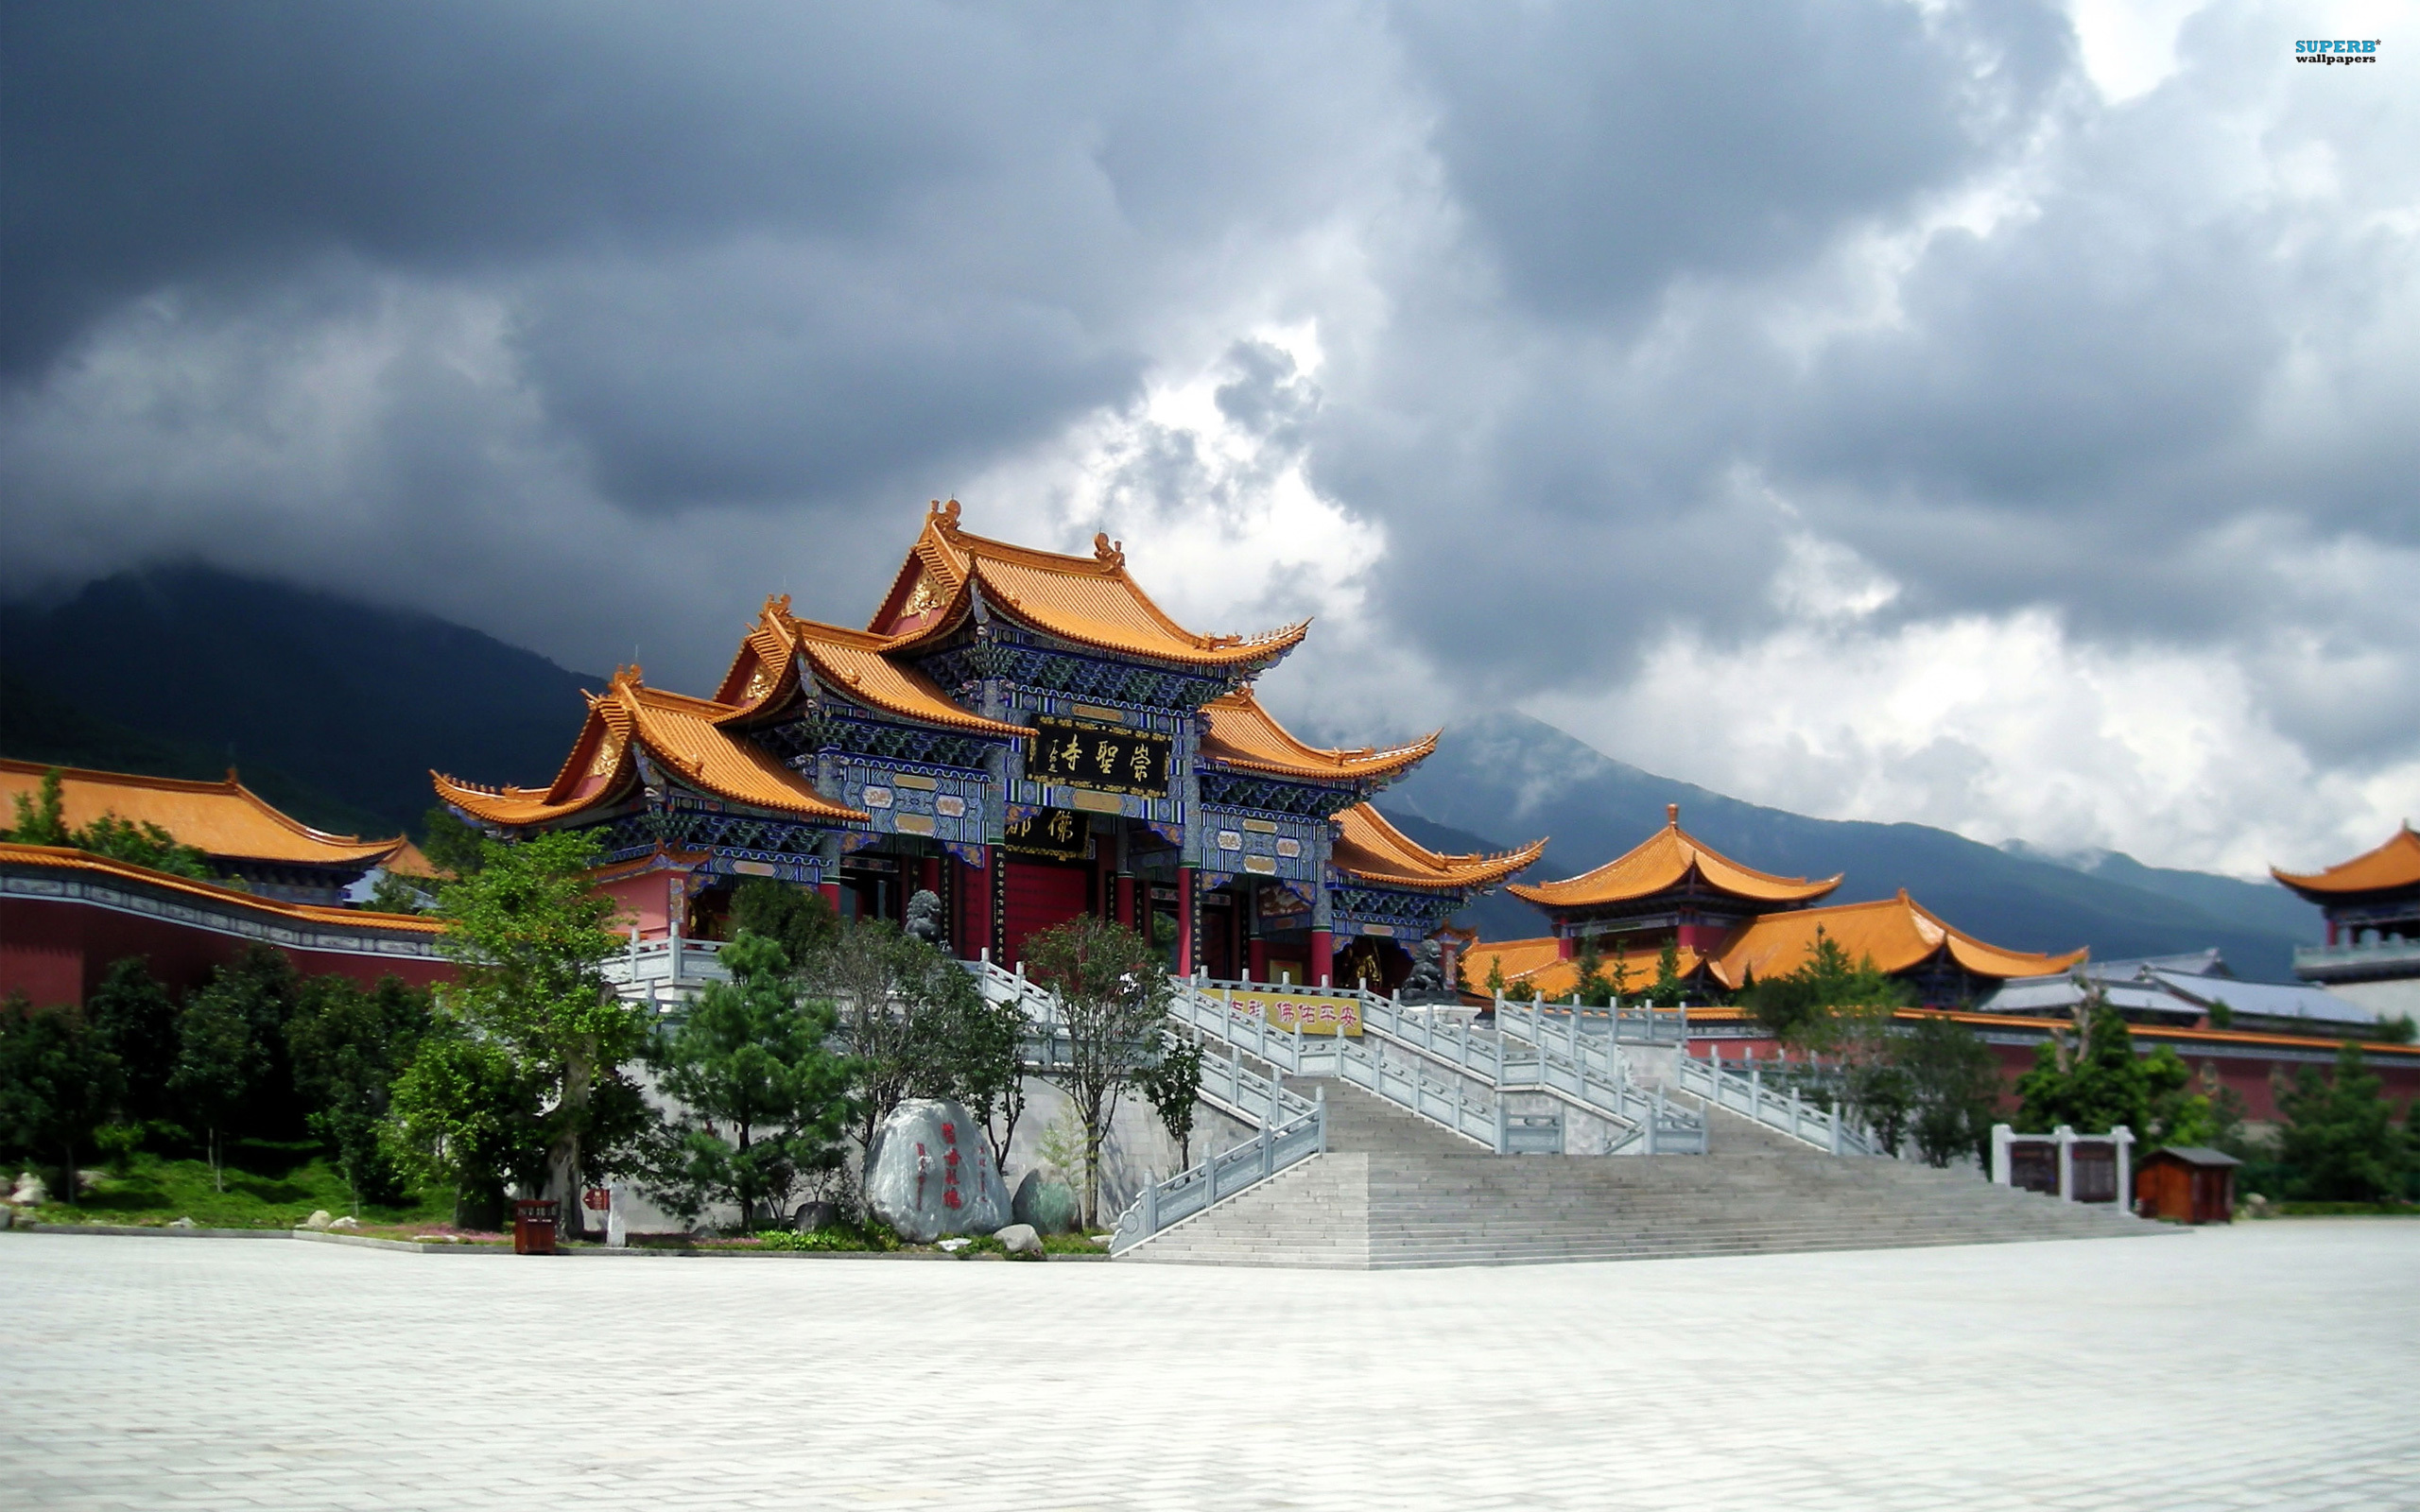 Chongsheng Temple In Yunnan China Wallpaper #121966 - Resolution 2560x1600 px